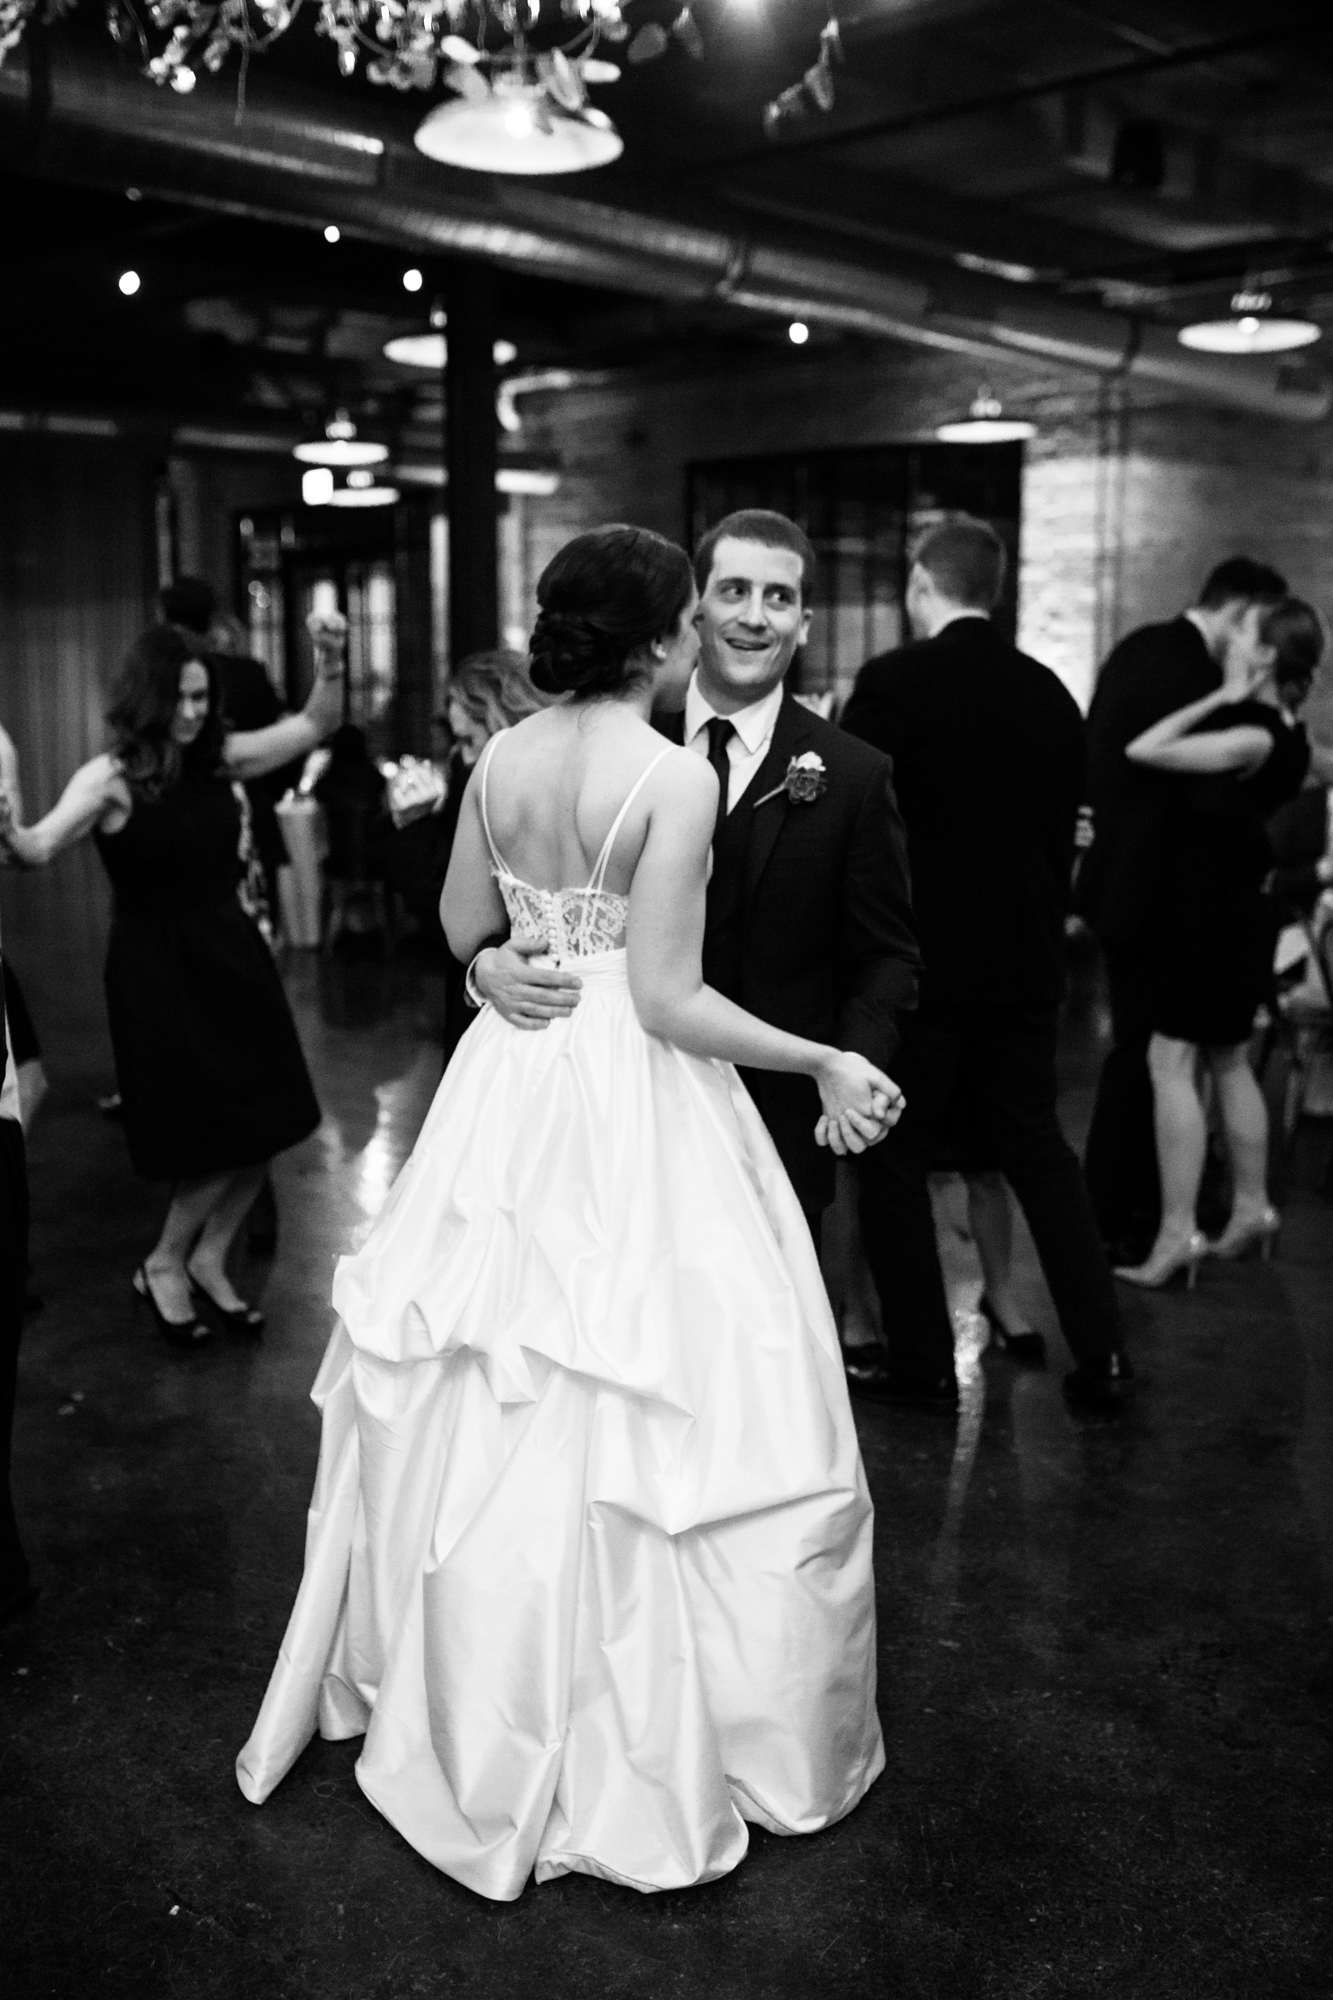 Bride and groom dancing at Morgan Manufacturing wedding